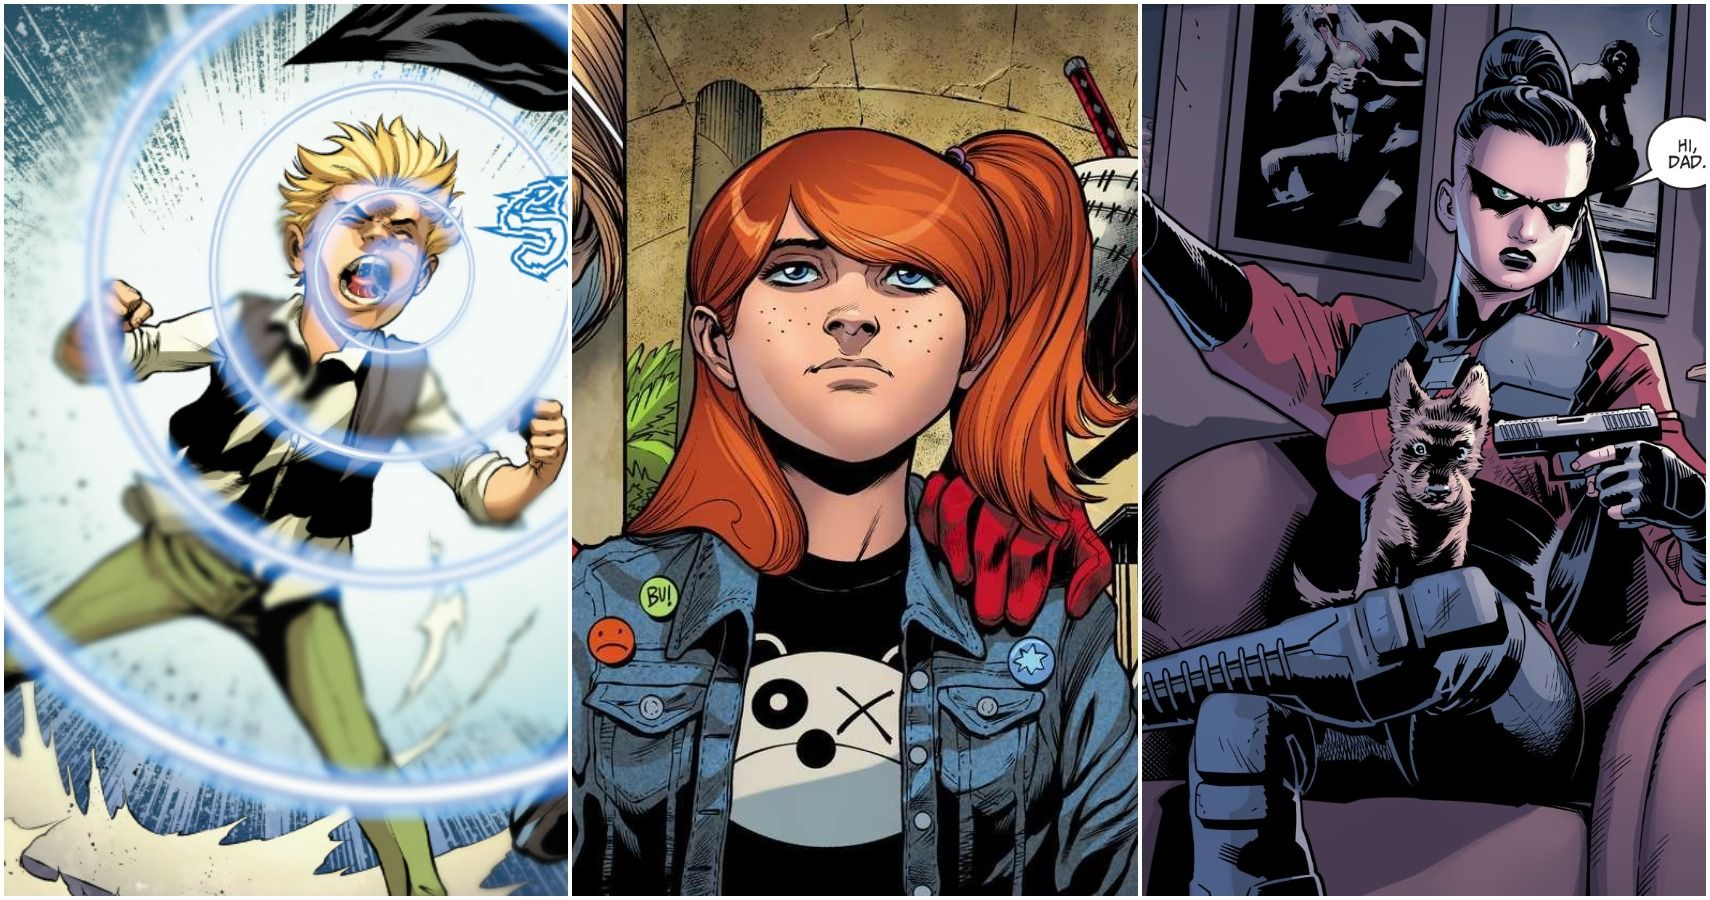 5 Marvel Characters Who Belong In The DC Universe (& 5 DC